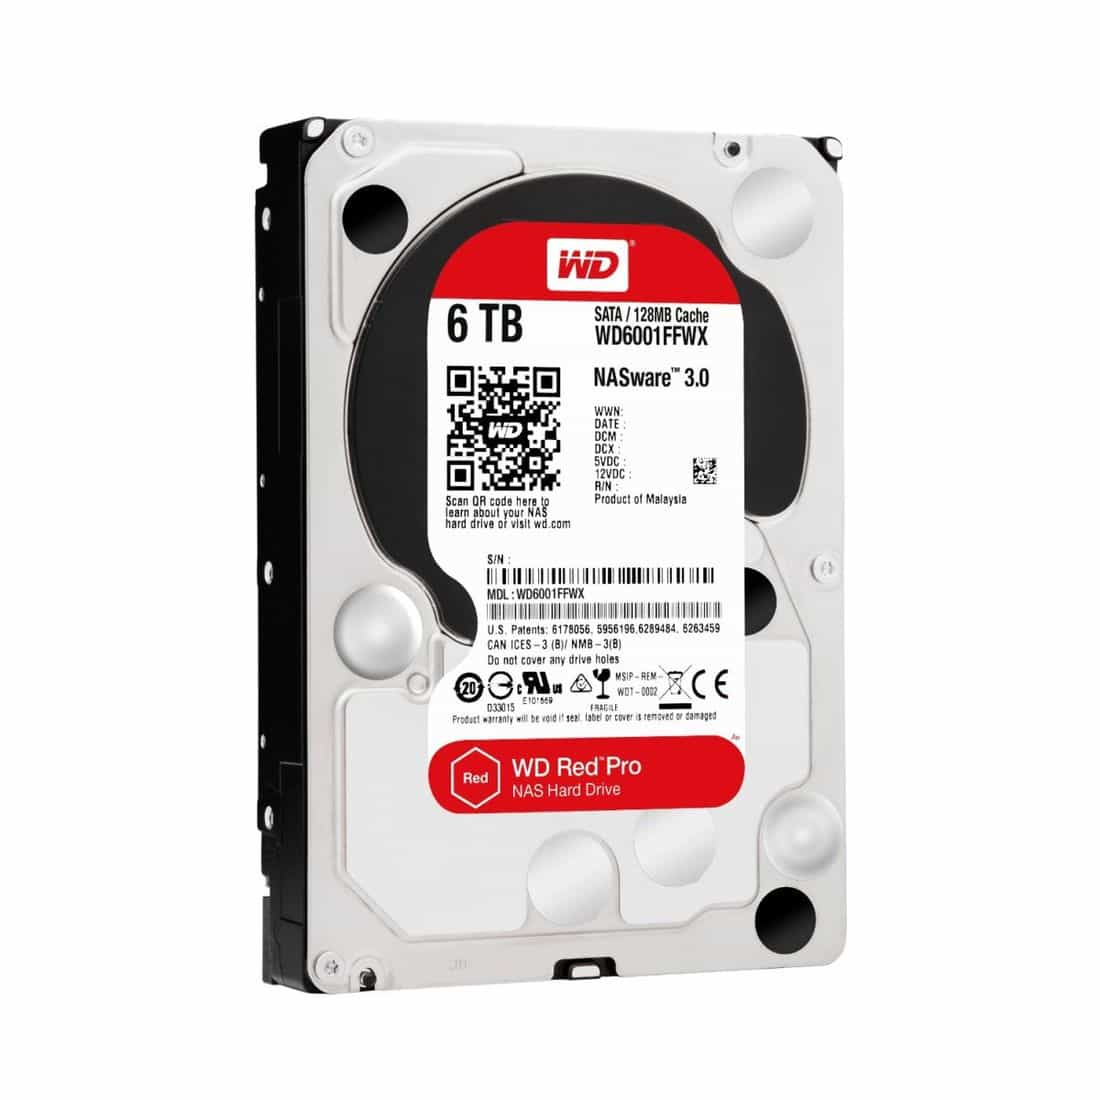 western digital expands wd red pro series with 6 tb drives. Black Bedroom Furniture Sets. Home Design Ideas